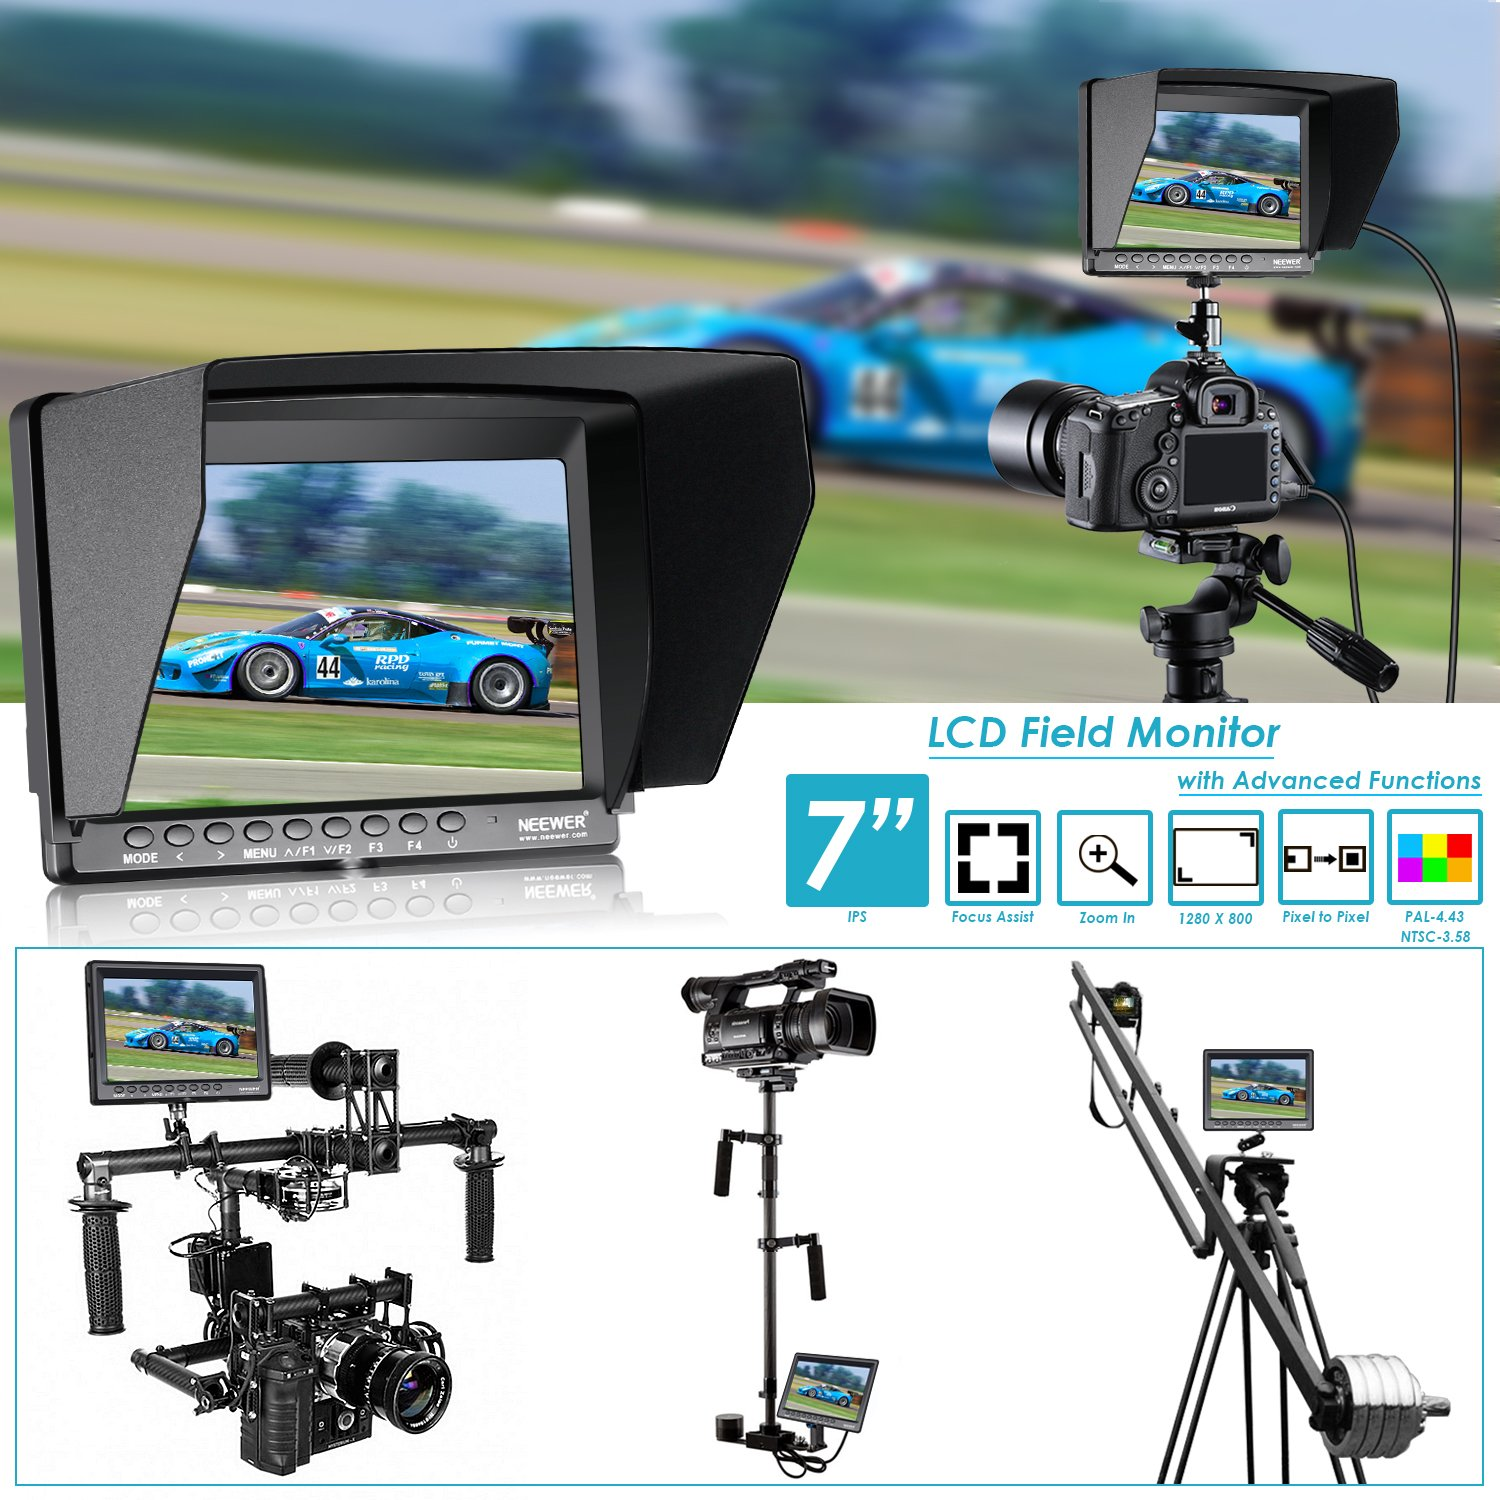 Neewer F100 7-inch 1280x800 IPS Screen Camera Field Monitor Kit: Support 4k input with 2600mAh Rechargeable Li-ion Battery, USB Battery Charger and 11.8-inch Magic Arm for DSLR Camera/Camcorder by Neewer (Image #2)